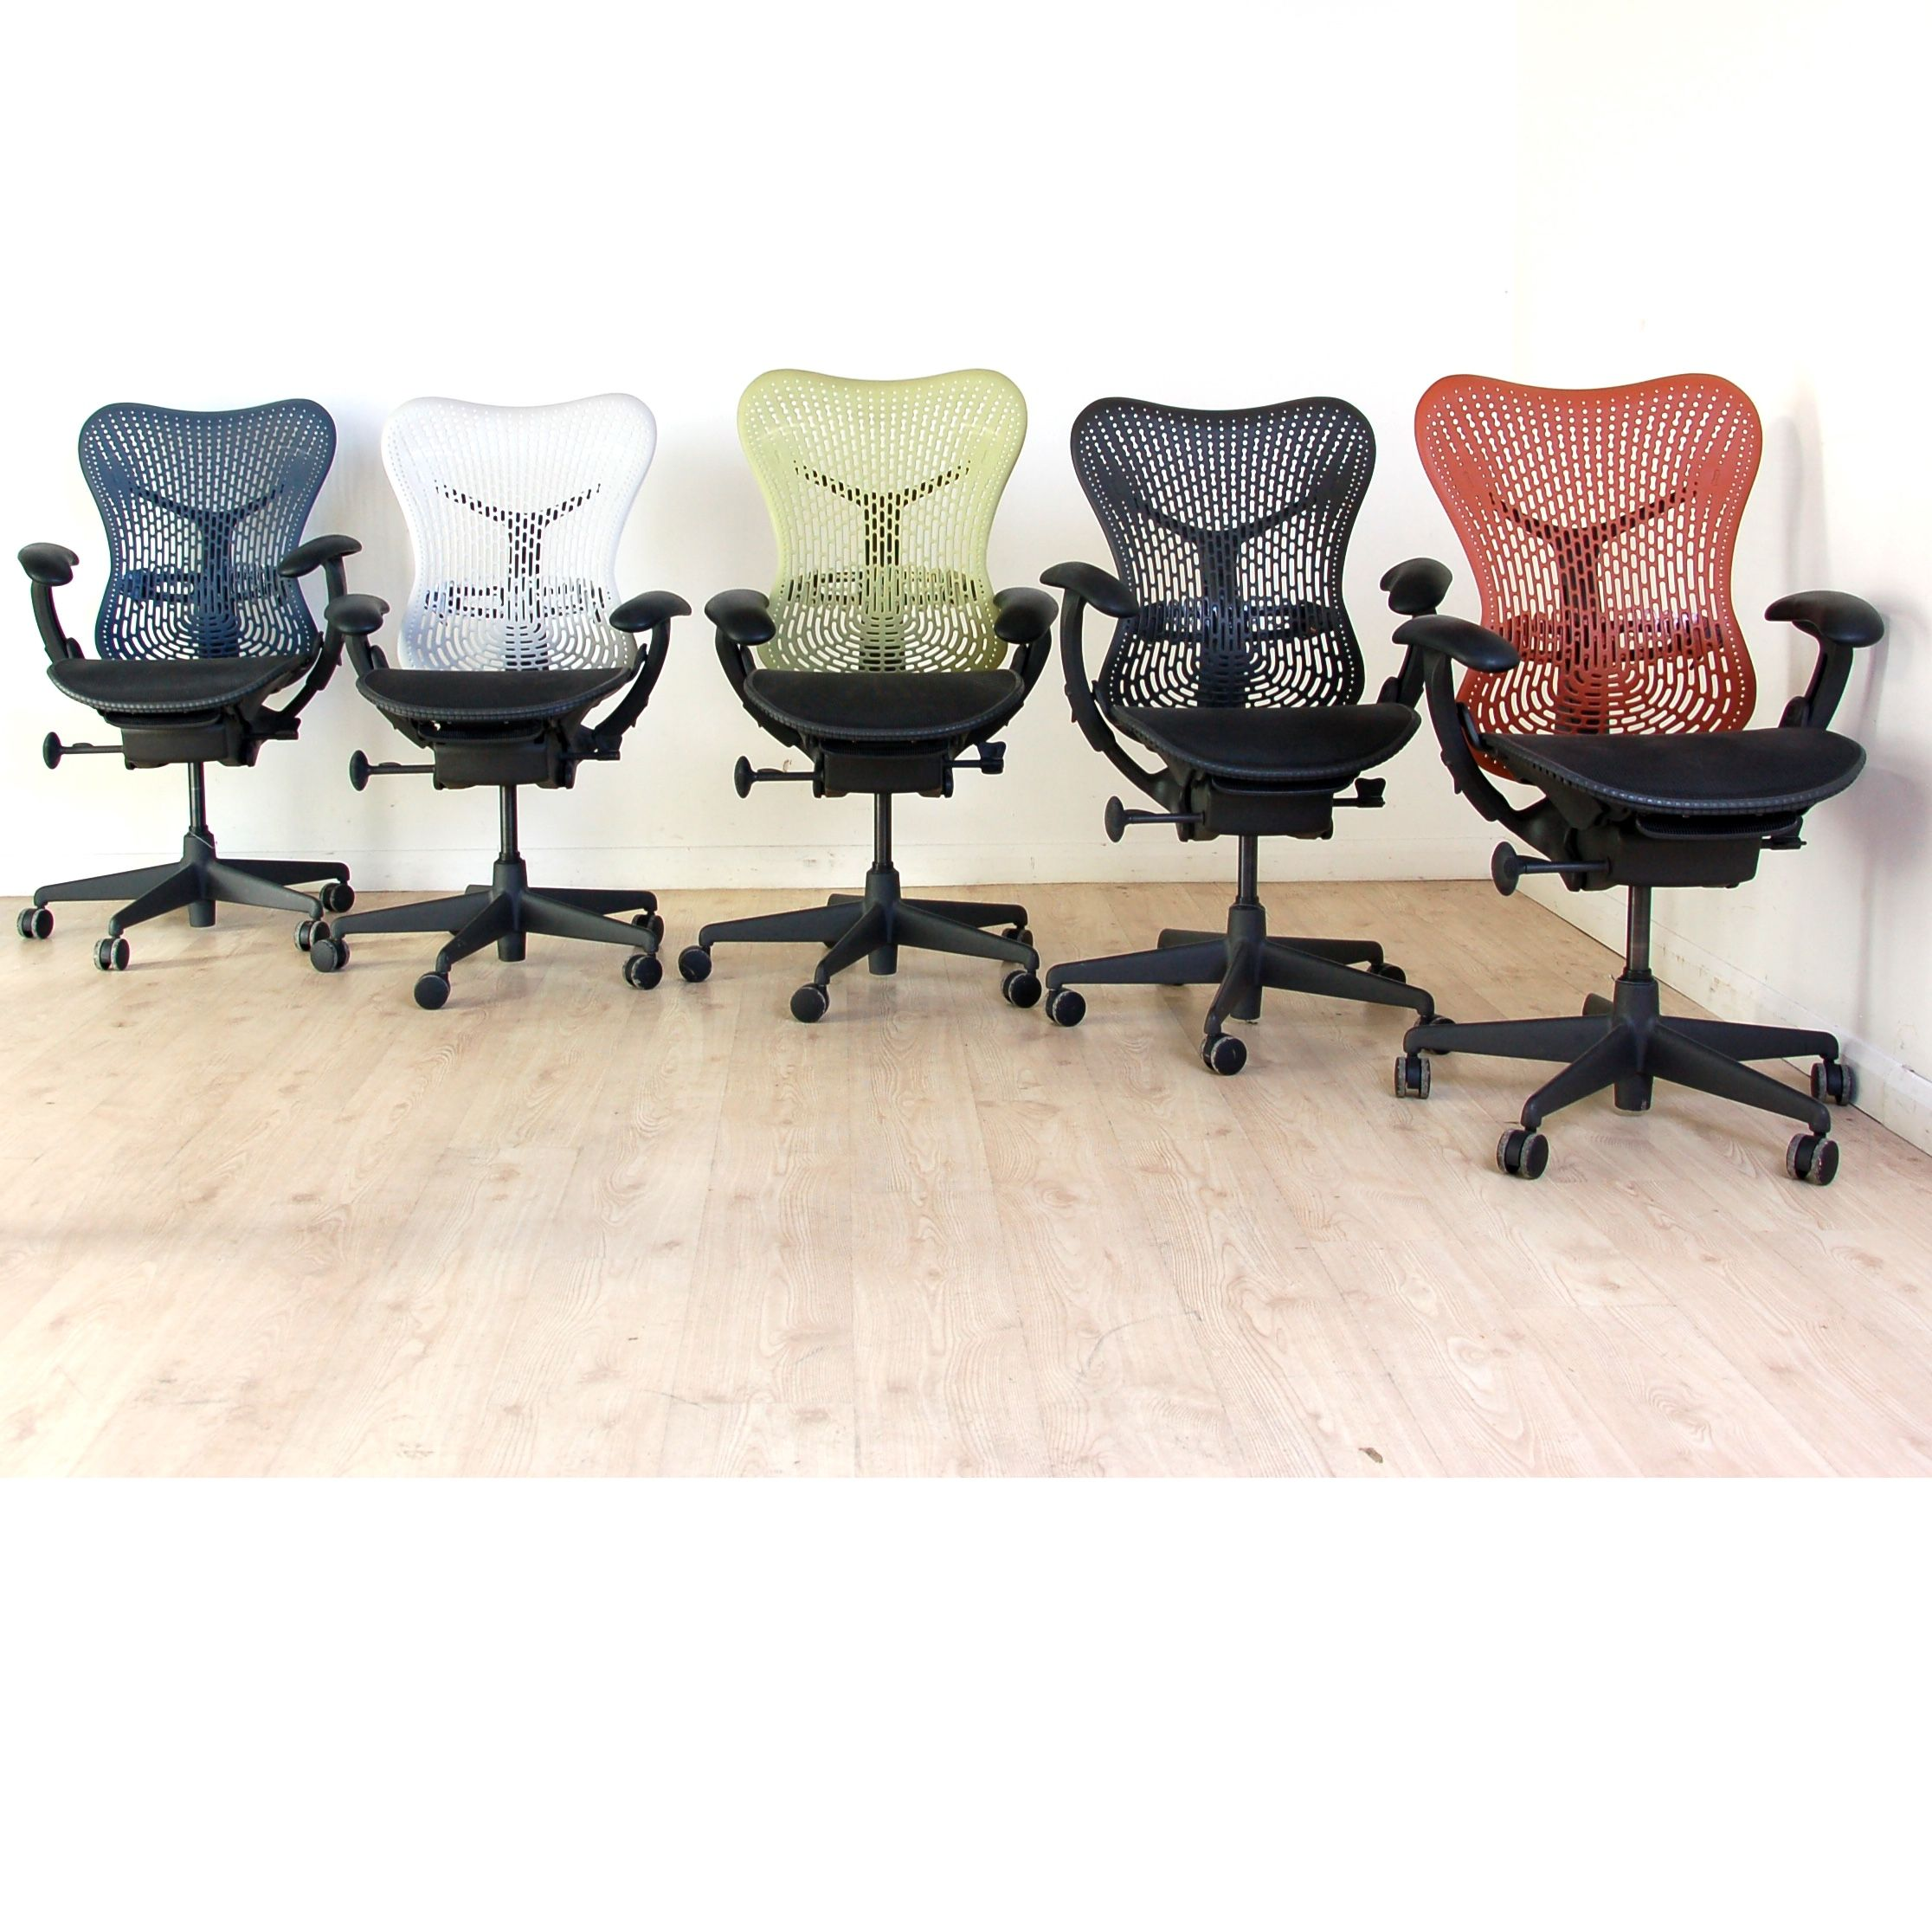 Used Herman Miller Mirra Chairs Available In A Wide Spectrum Of